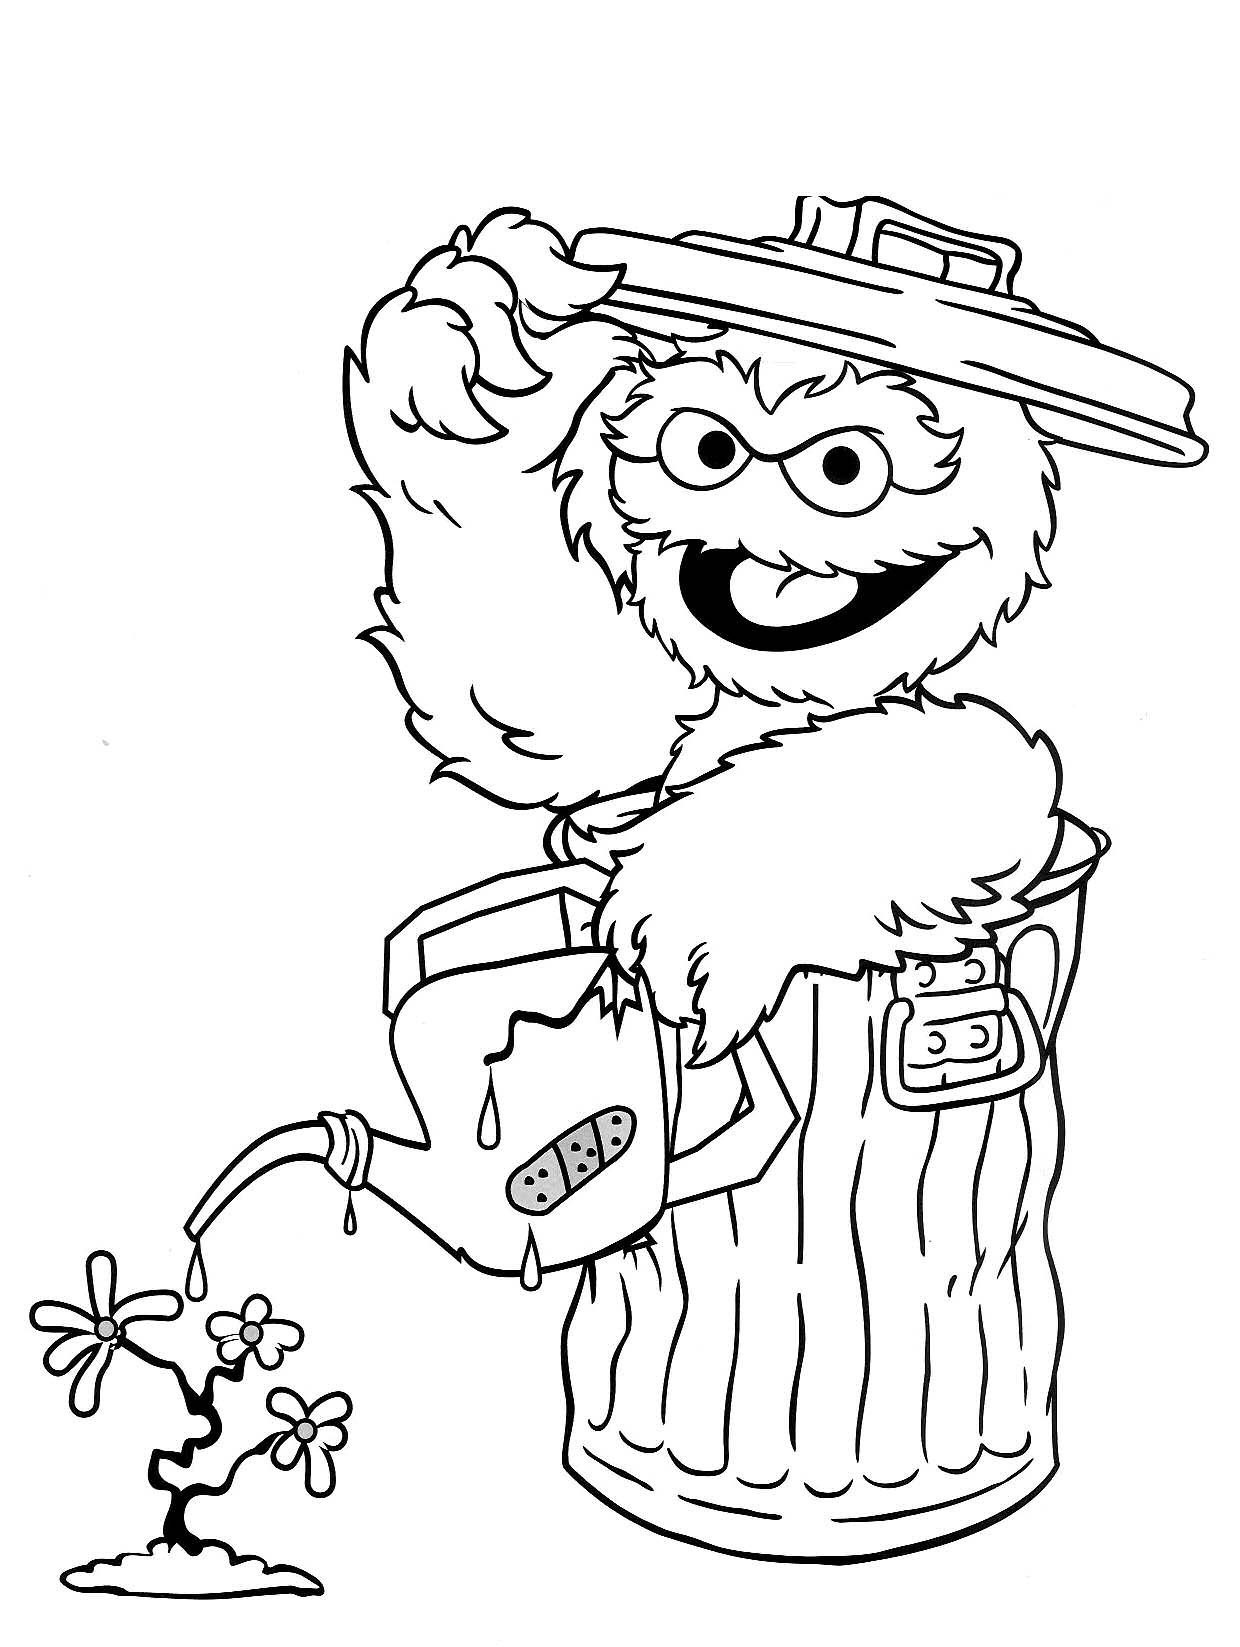 Free Printable Sesame Street Coloring Pages For Kids - Free Printable Coloring Pages Sesame Street Characters